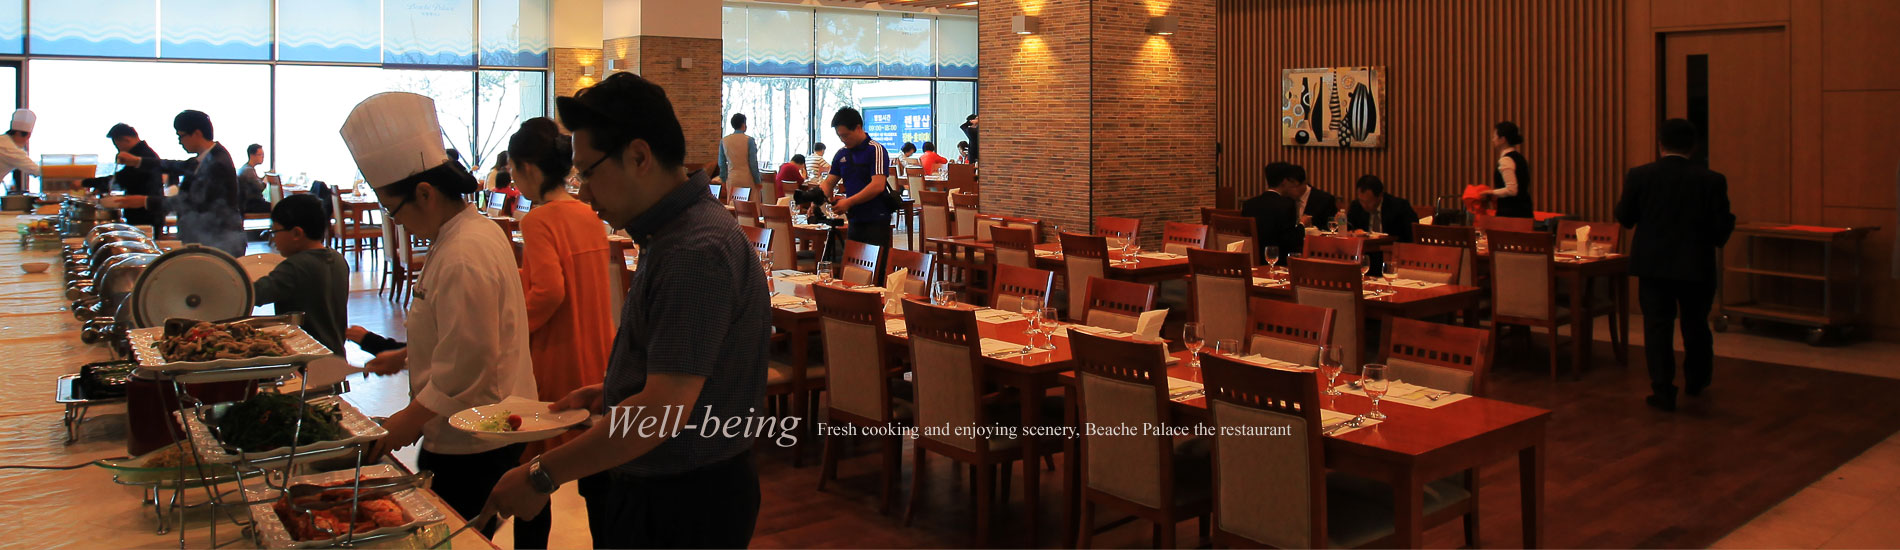 Well-being Fresh cooking and enjoying scenery, Beache Palace the restaurant